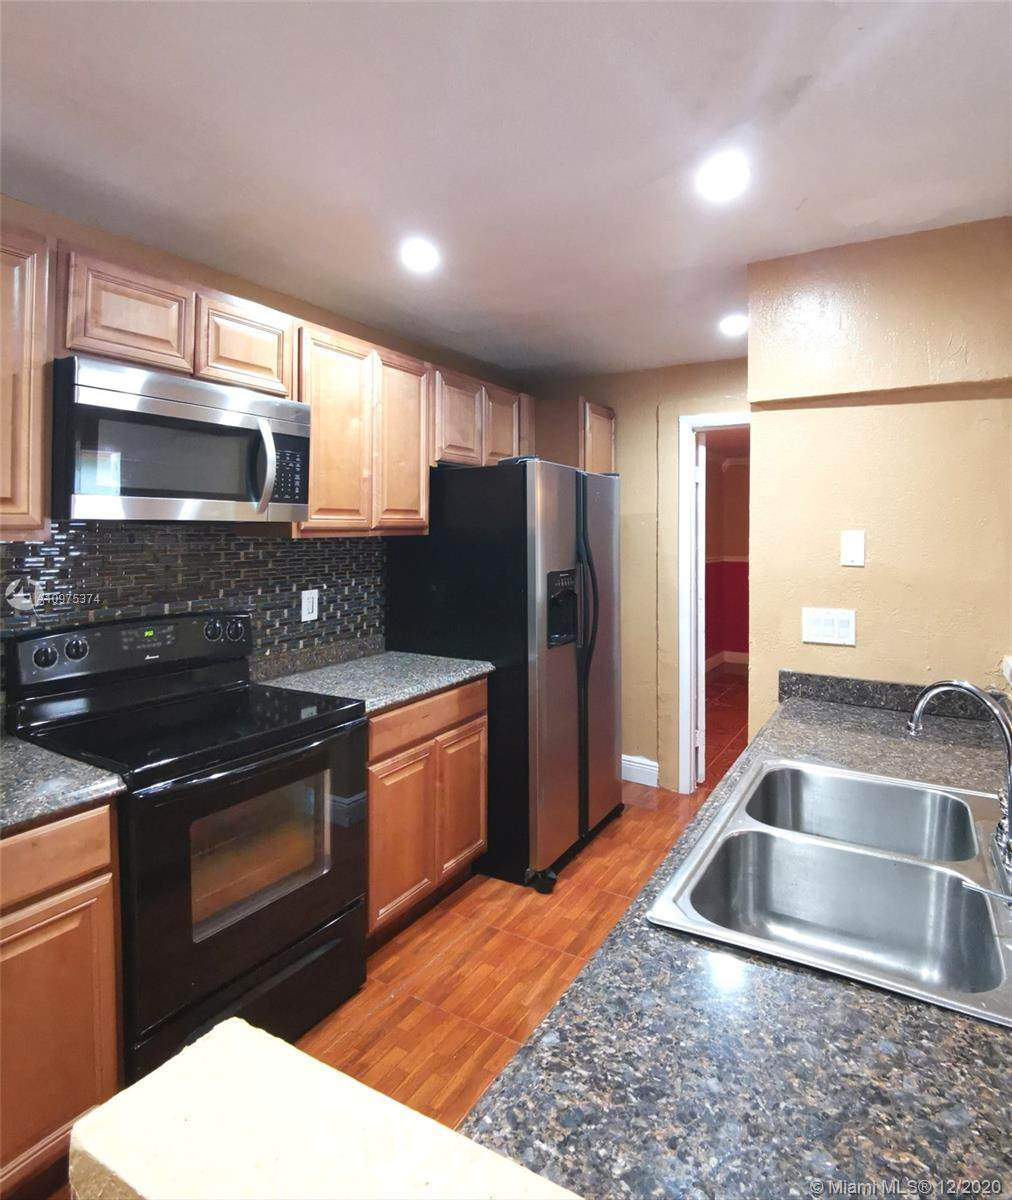 6518 Harbour Rd - Photo 1